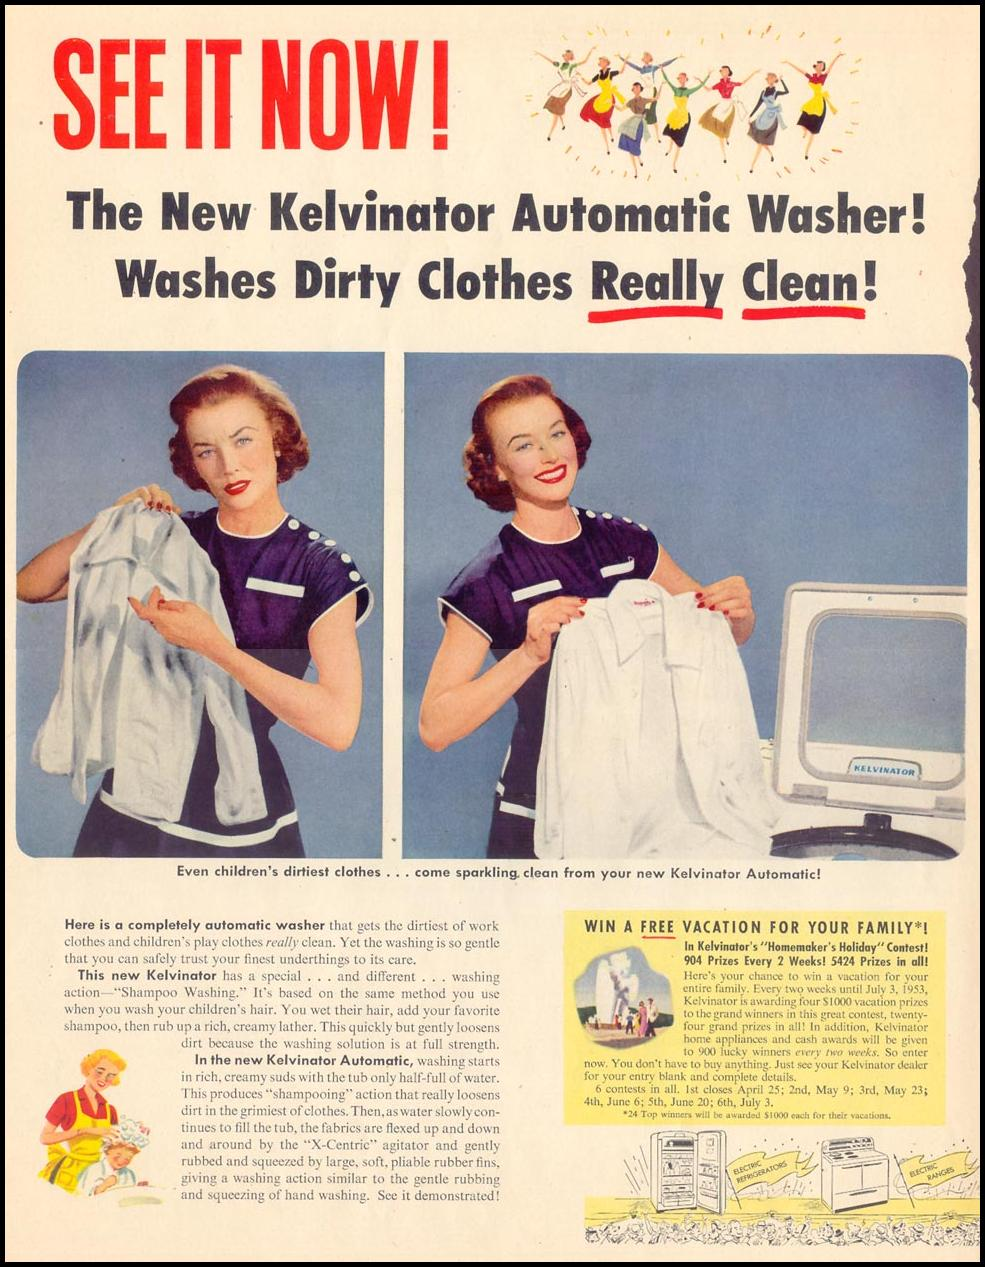 KELVINATOR AUTOMATIC CLOTHES WASHER